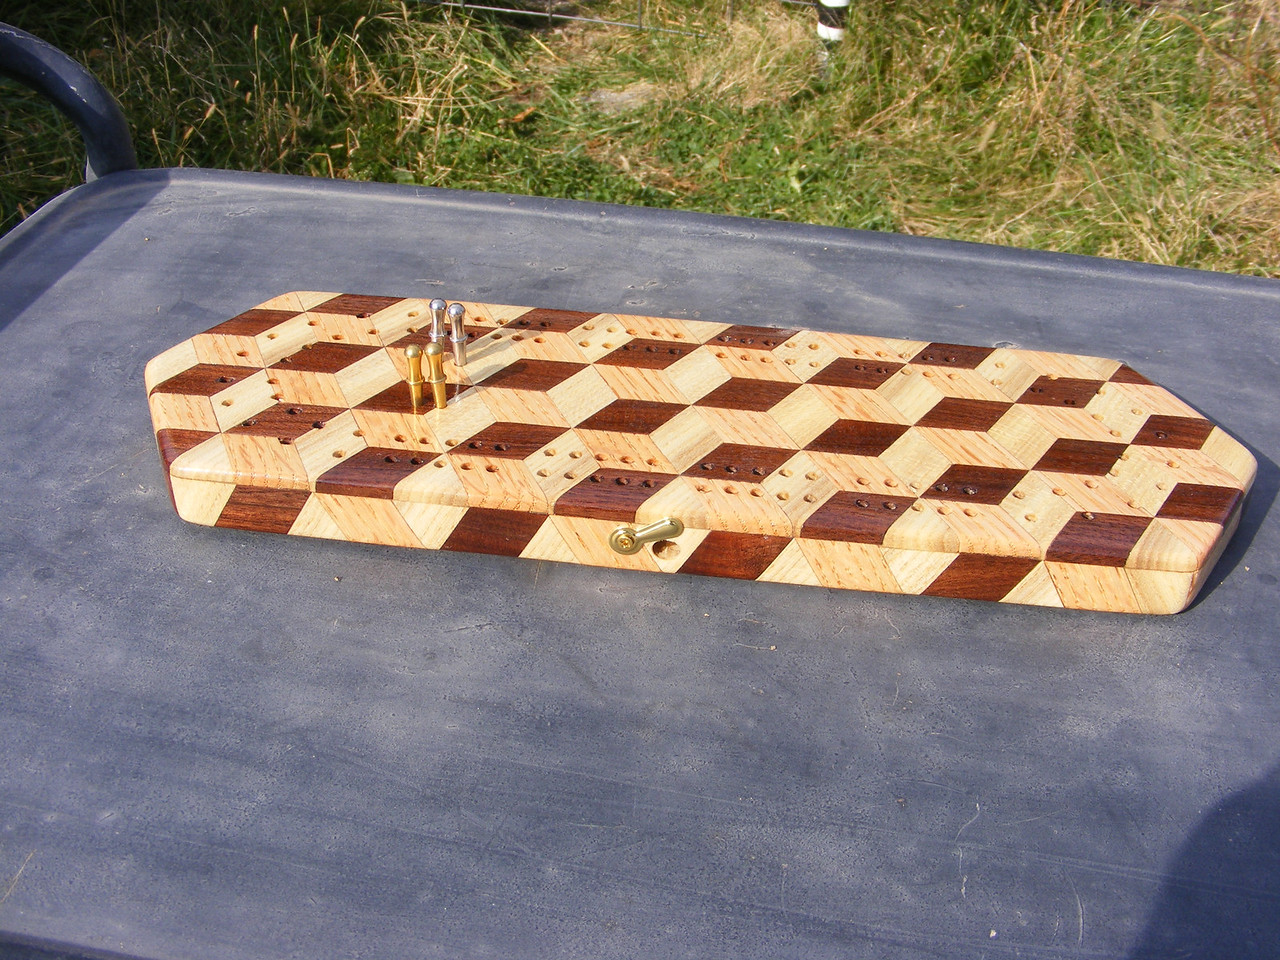 34 - Making a Tumbling Block Cribbage Board <br /> This is the finished cribbage board.